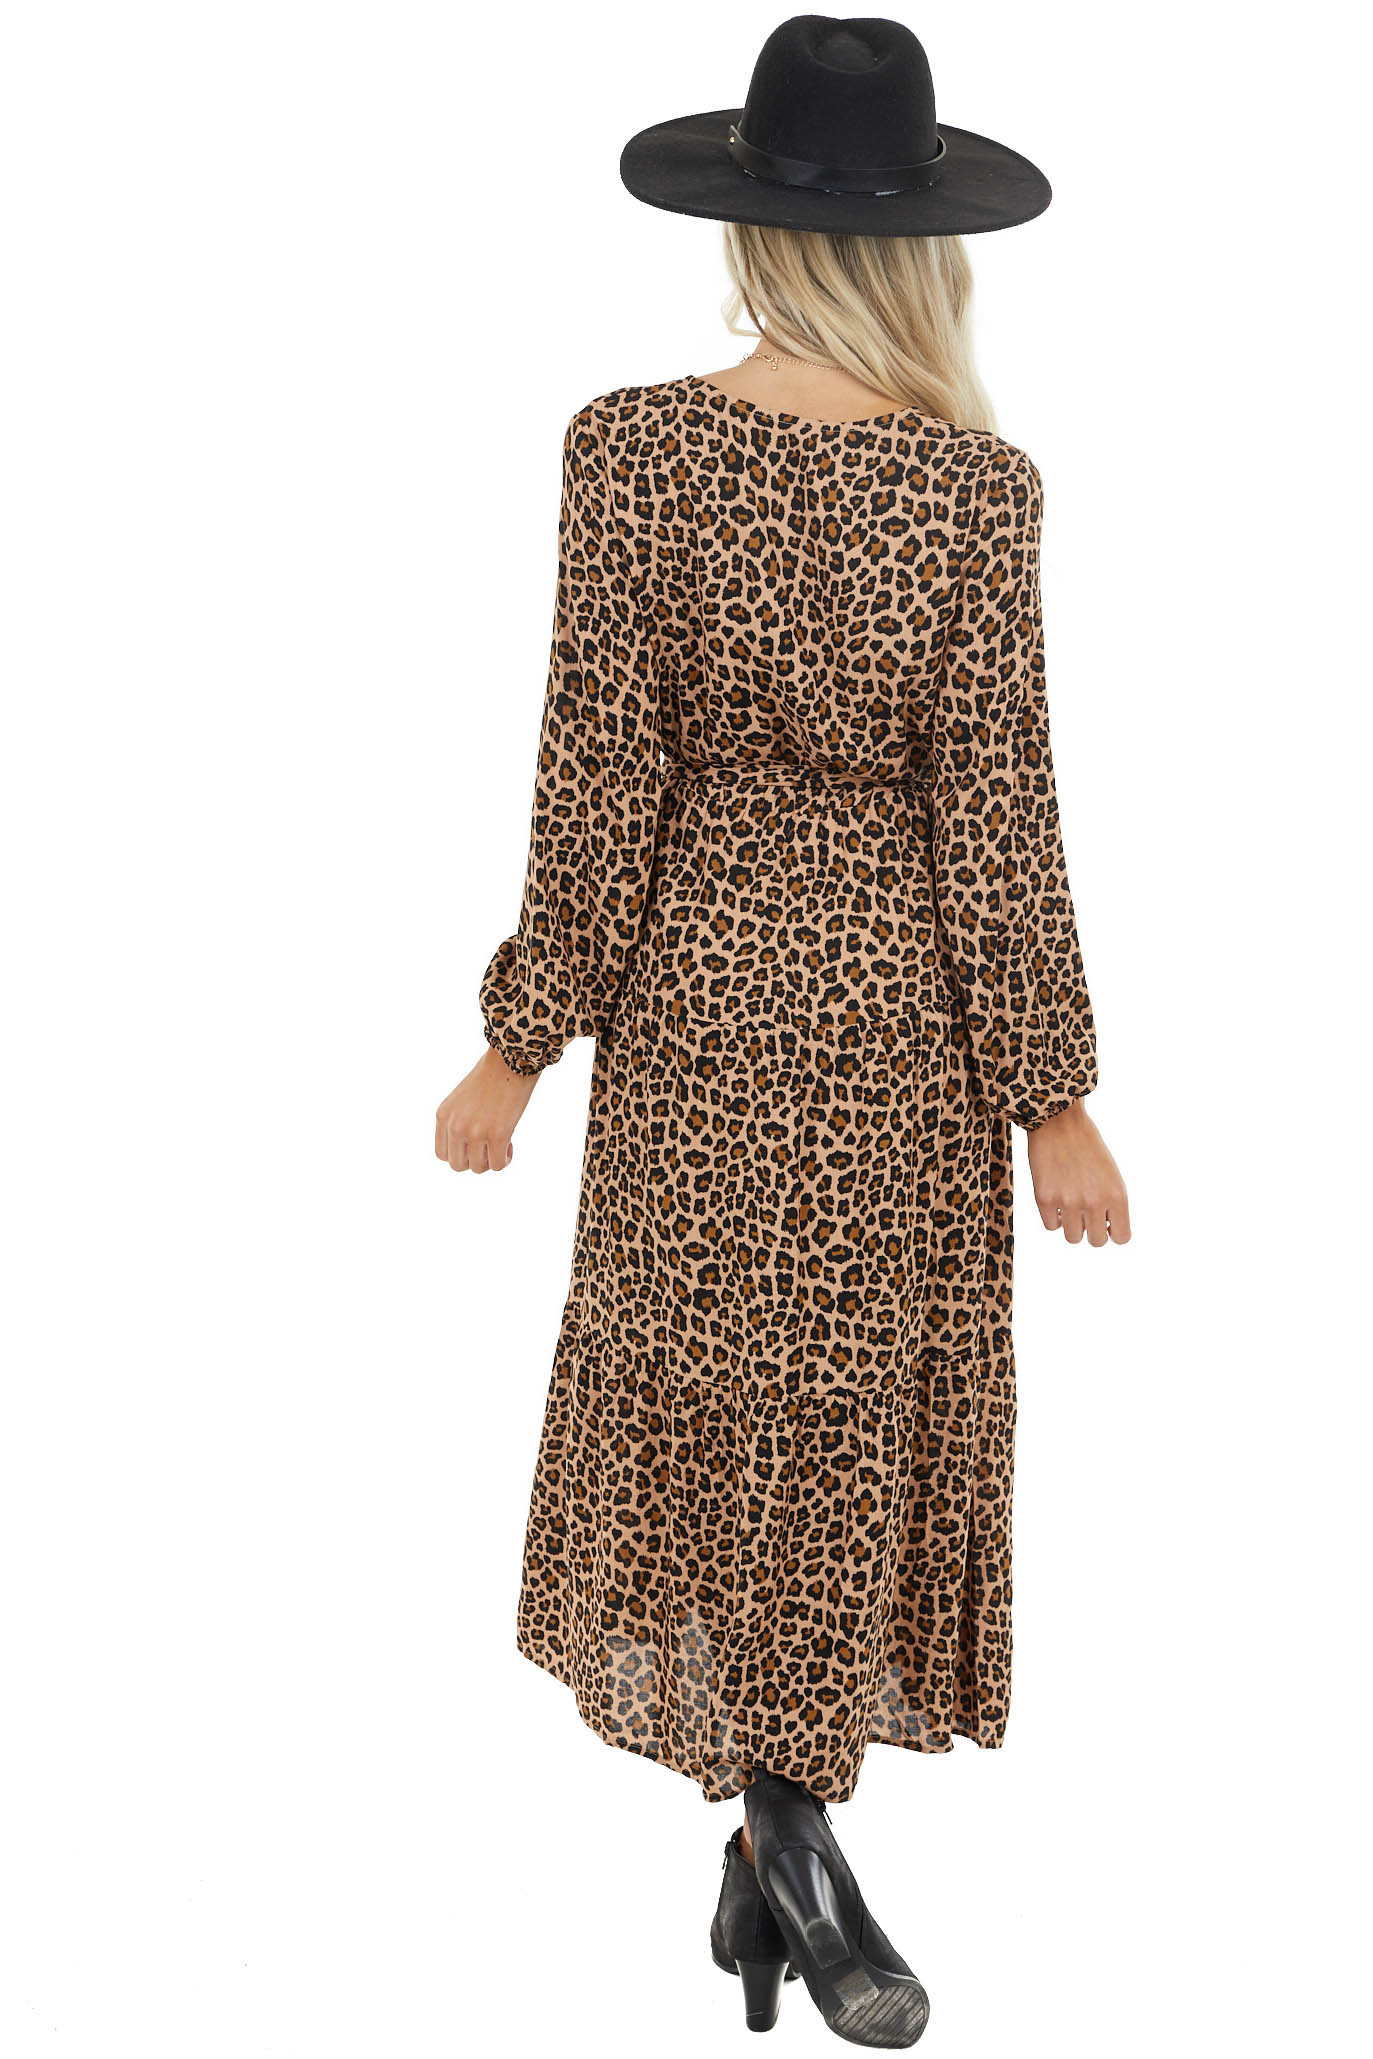 Desert Sand Button Up Leopard Print V Neck Midi Dress